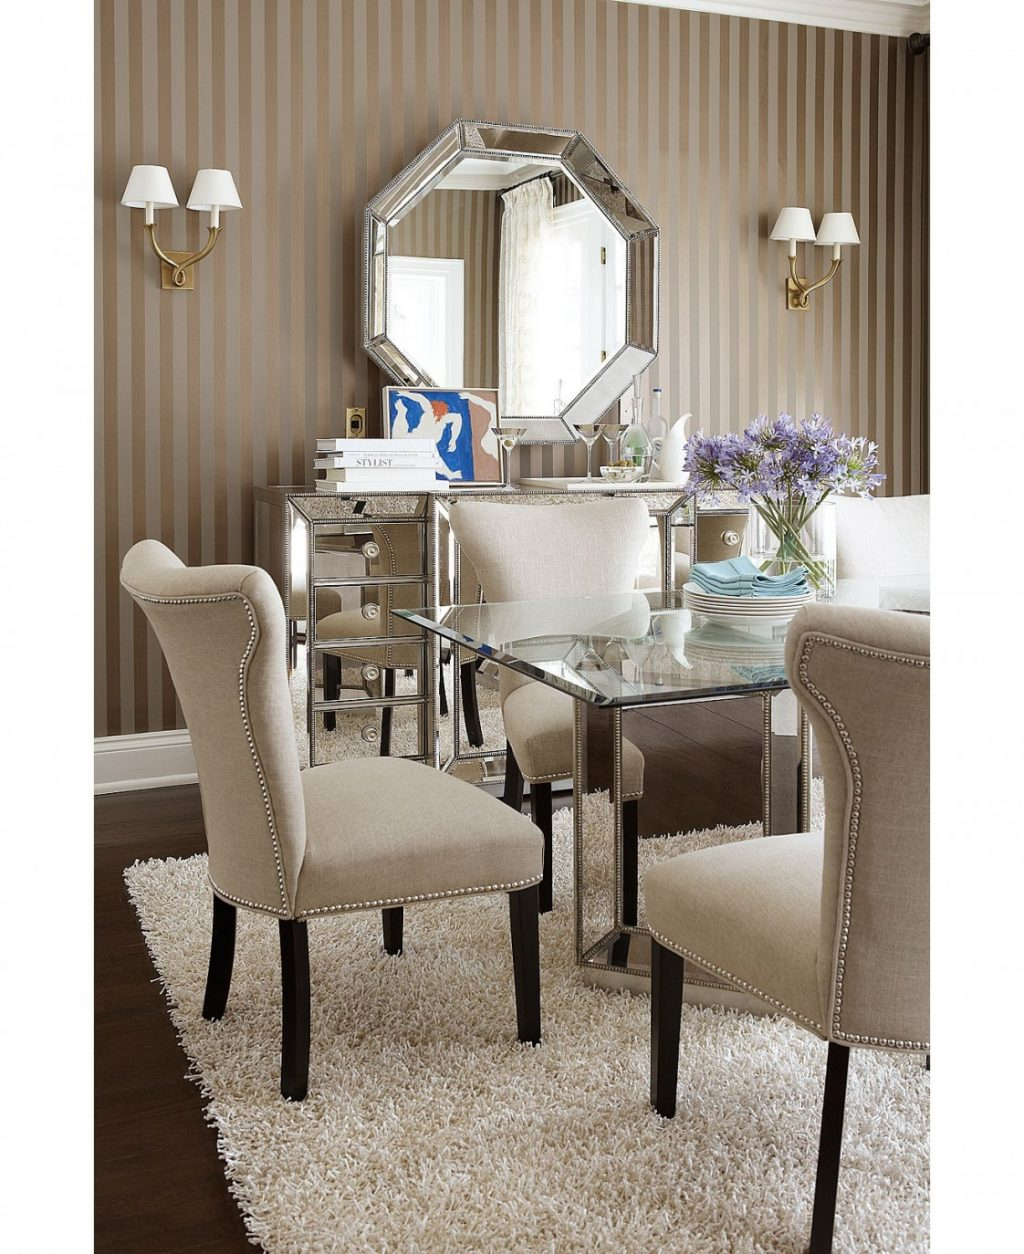 Dining Room Sets Macys Home Decorating Interior Design Ideas Idan